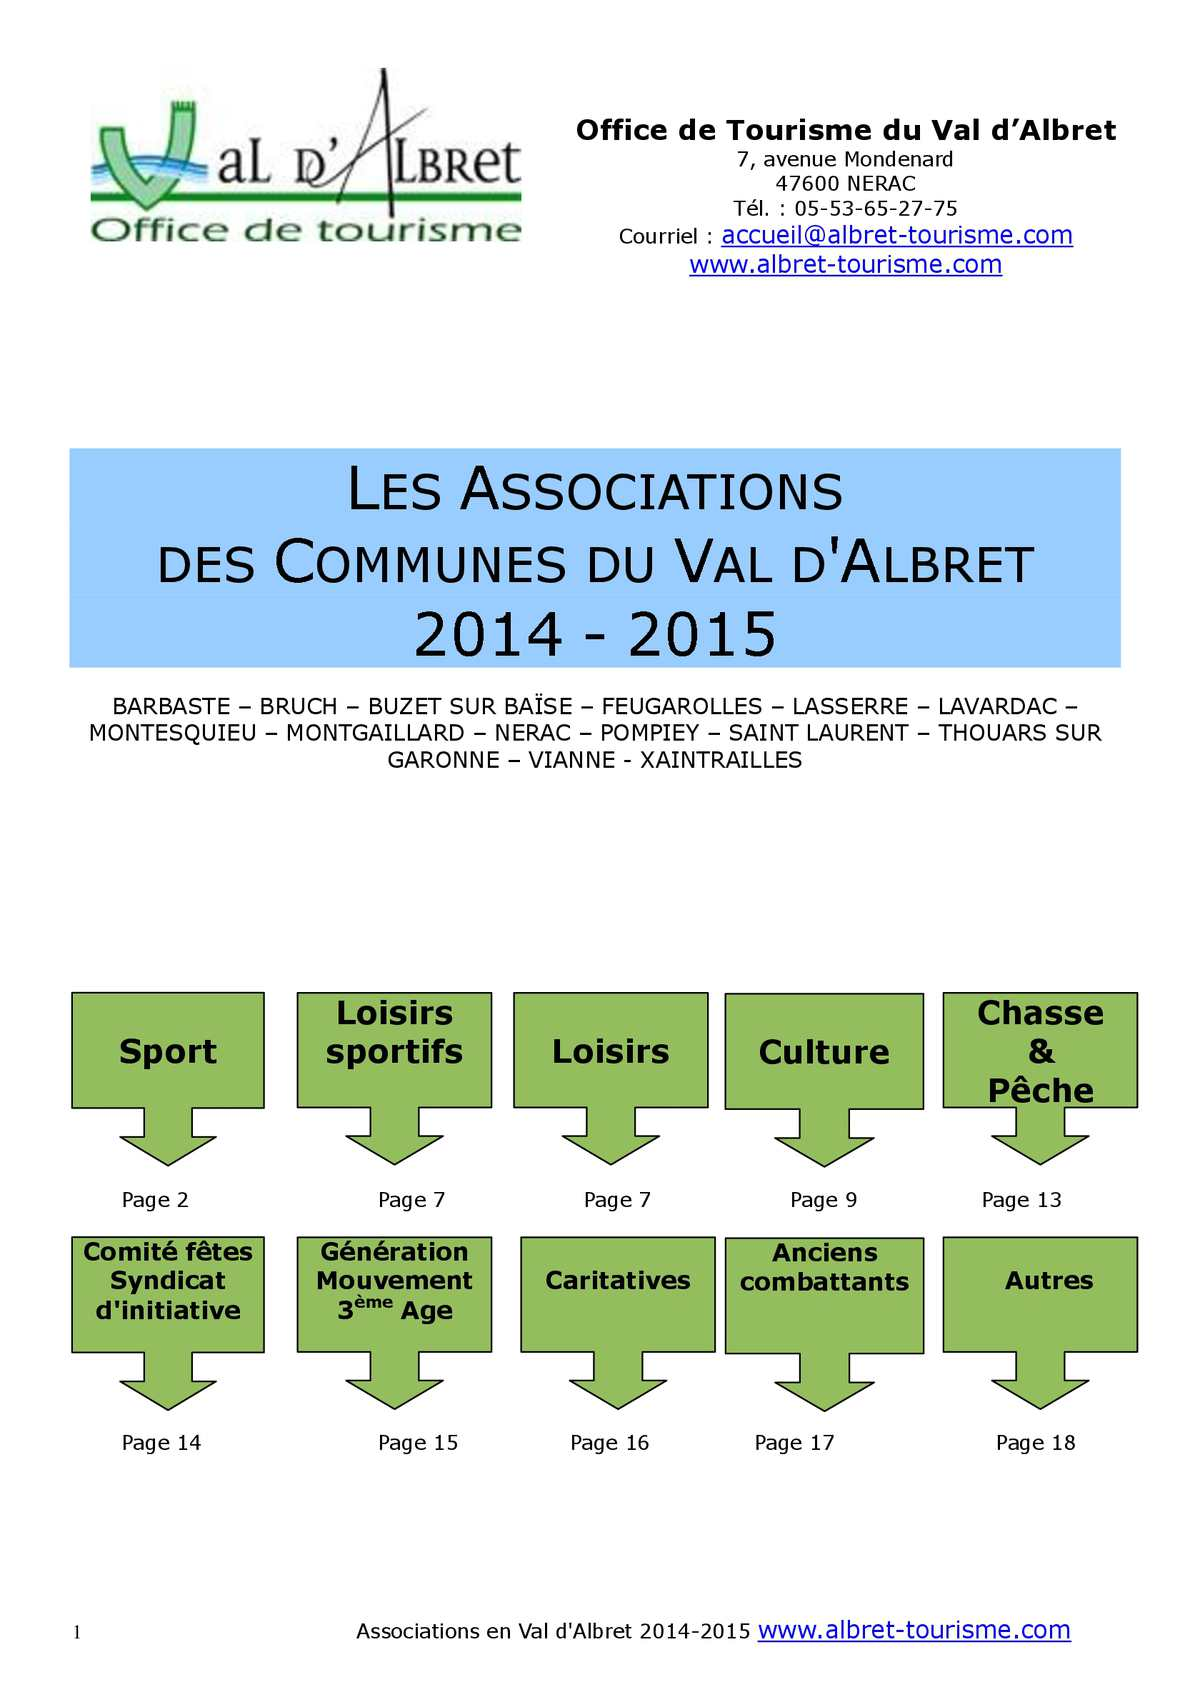 Calam o guide des associations du val d 39 albret 2014 2015 - Office du tourisme thouars ...